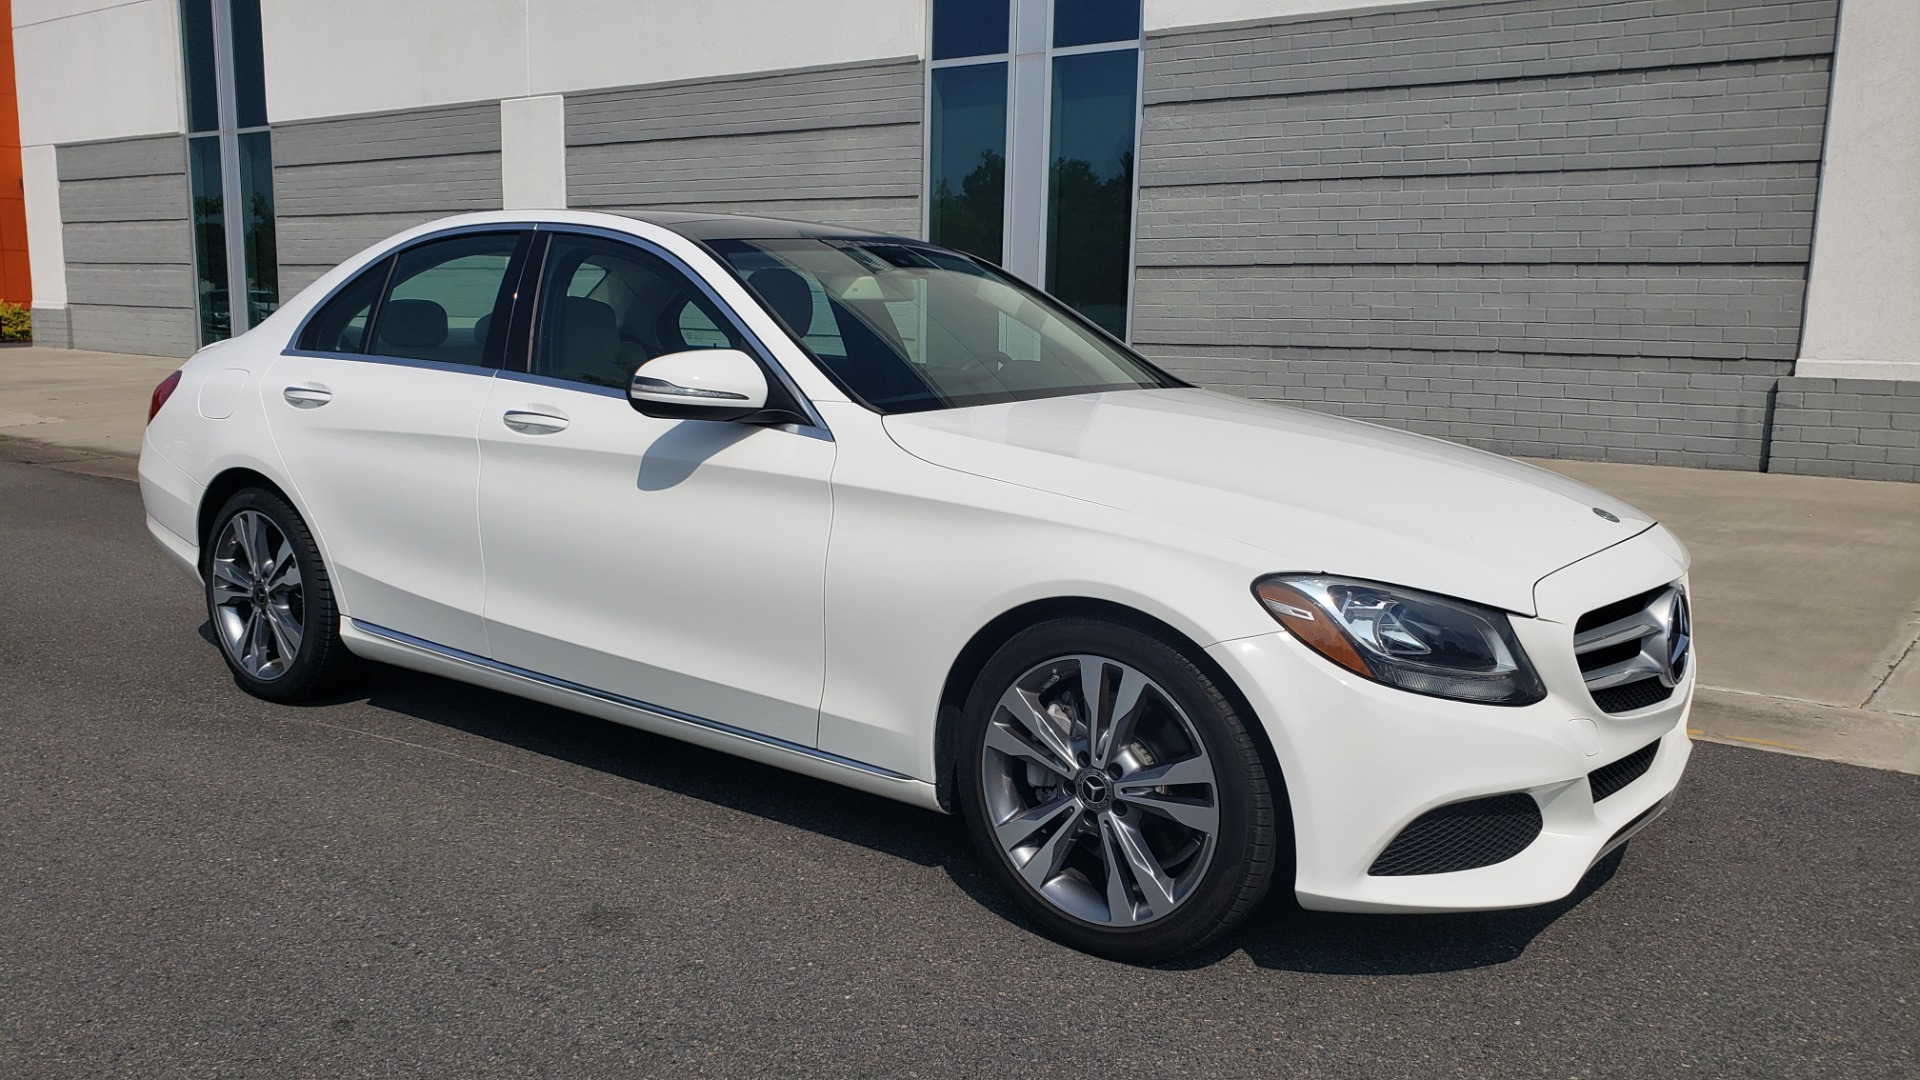 Used 2018 Mercedes-Benz C-CLASS C 300 PREMIUM / KEYLESS-GO / APPLE / PANO-ROOF / REARVIEW for sale $28,295 at Formula Imports in Charlotte NC 28227 6